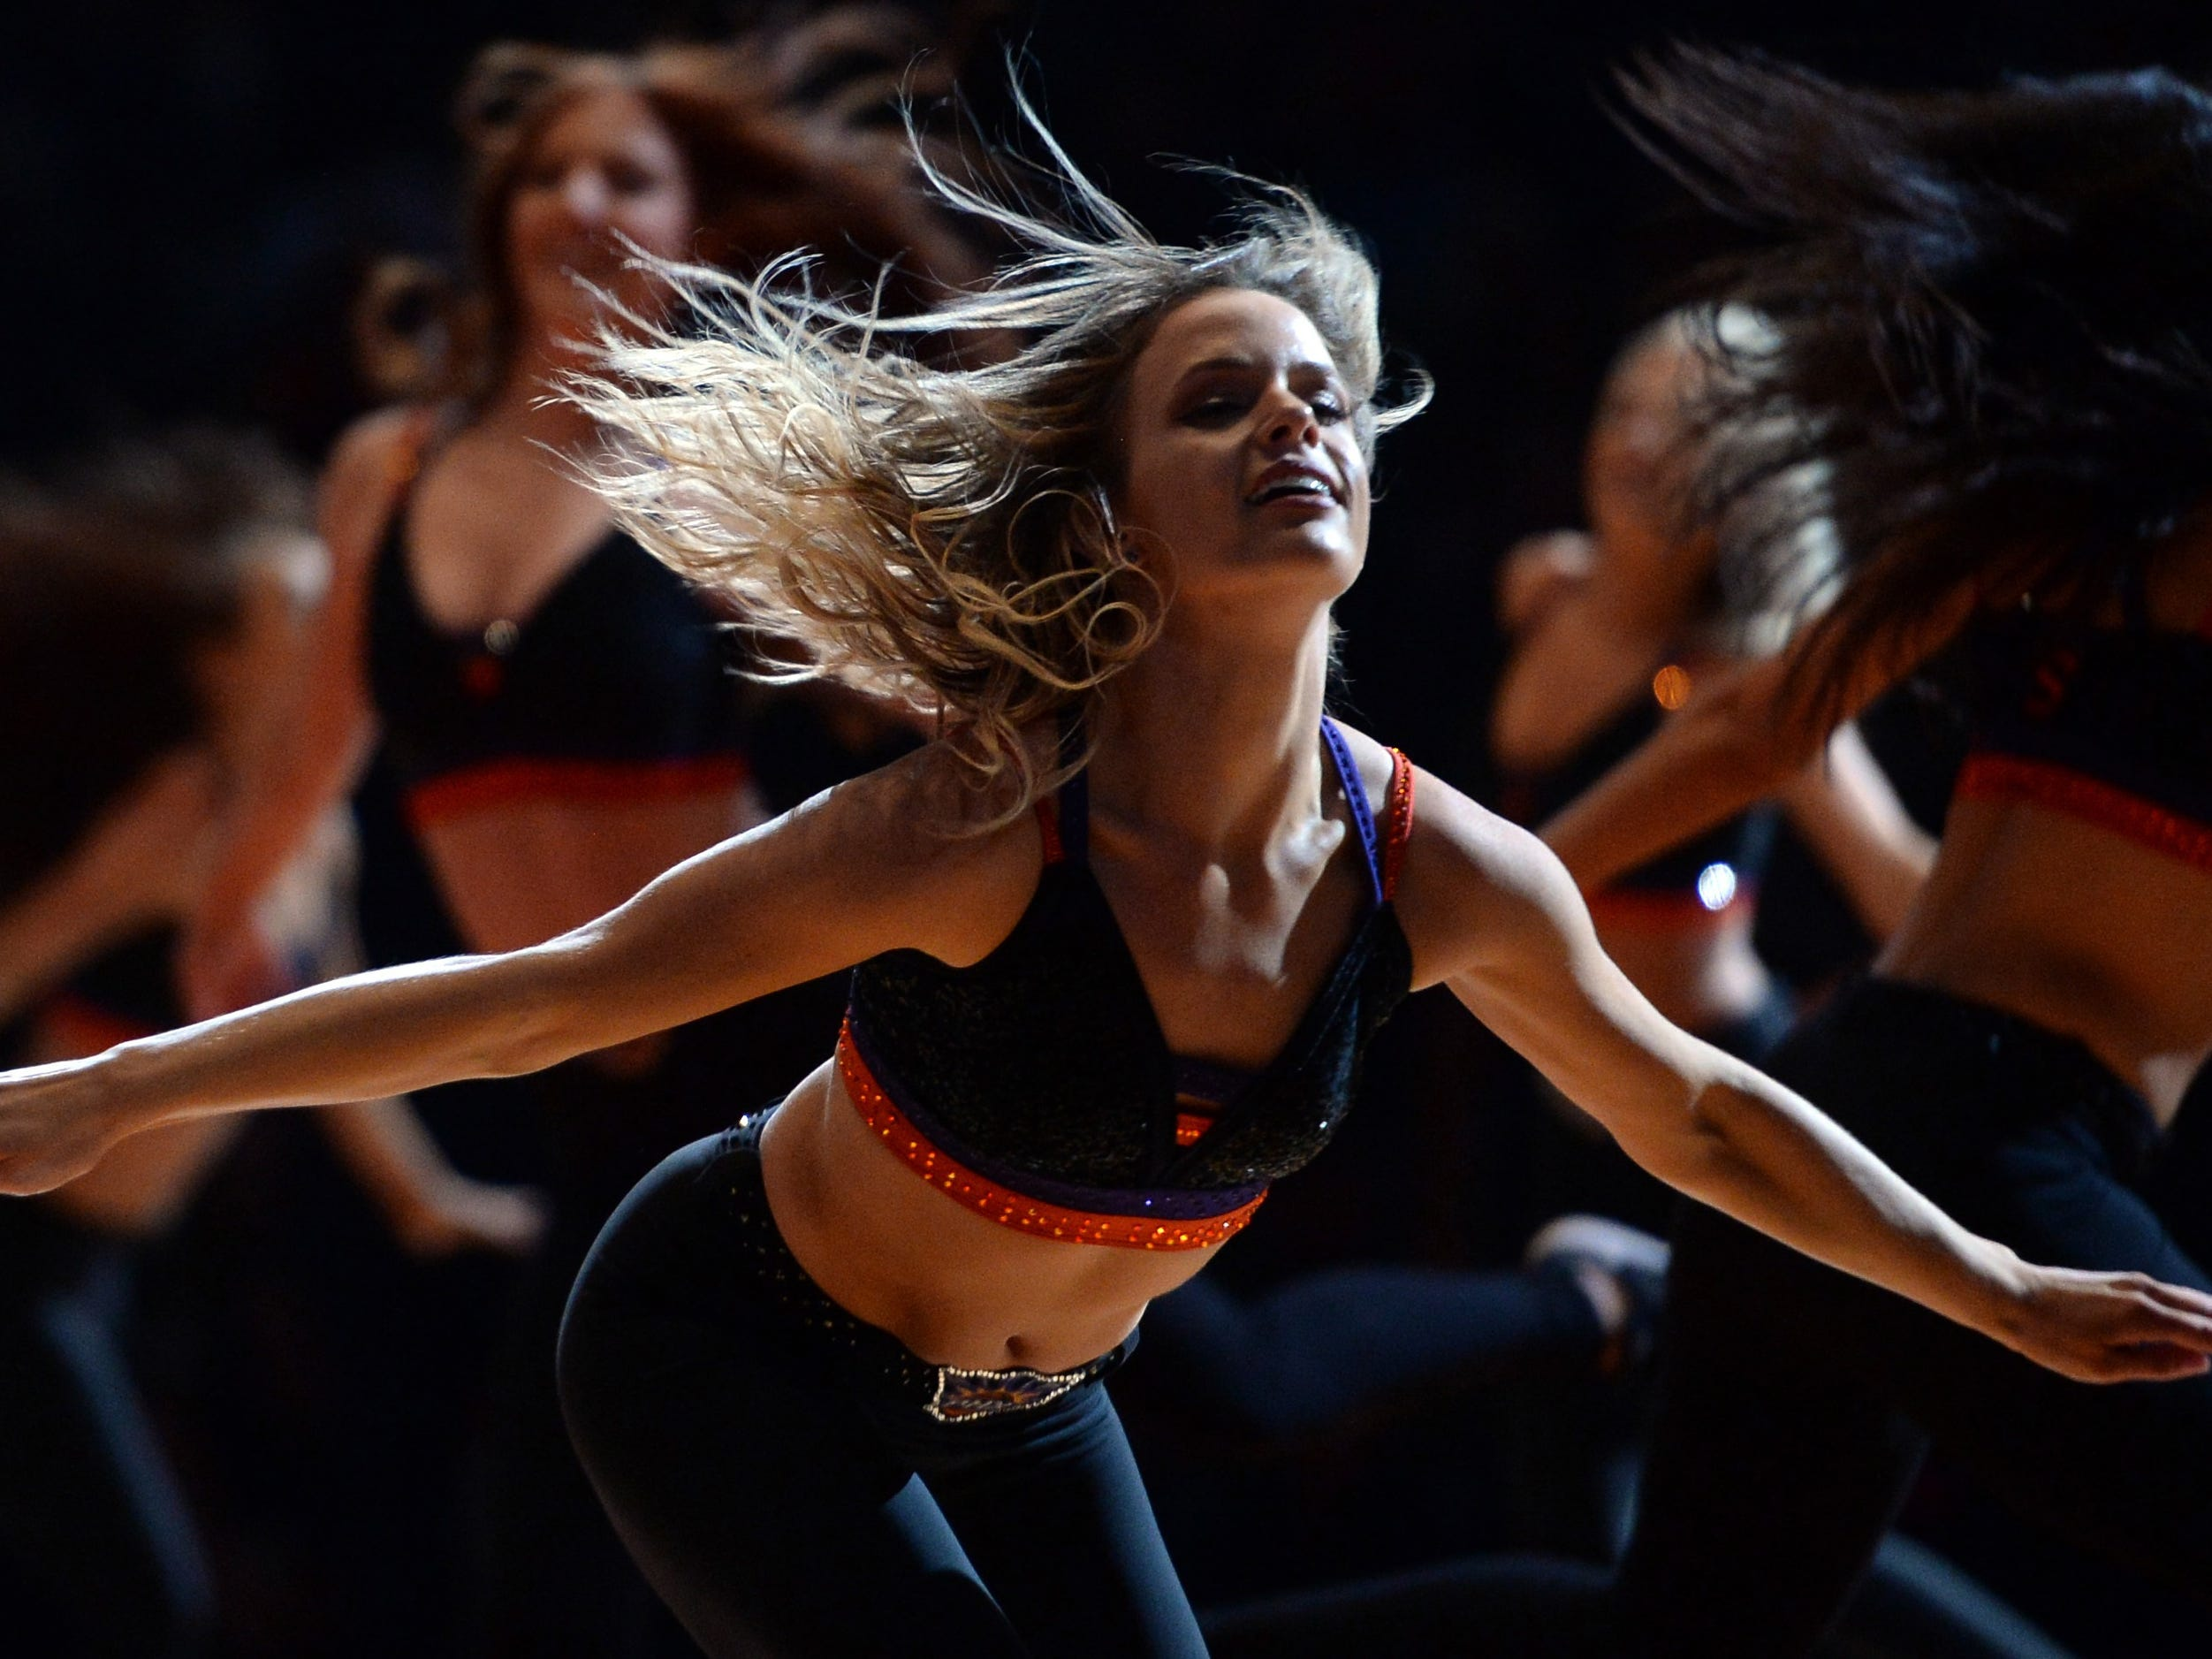 Nov. 17: Suns dancers entertain the crowd during a stop in play against the Thunder.